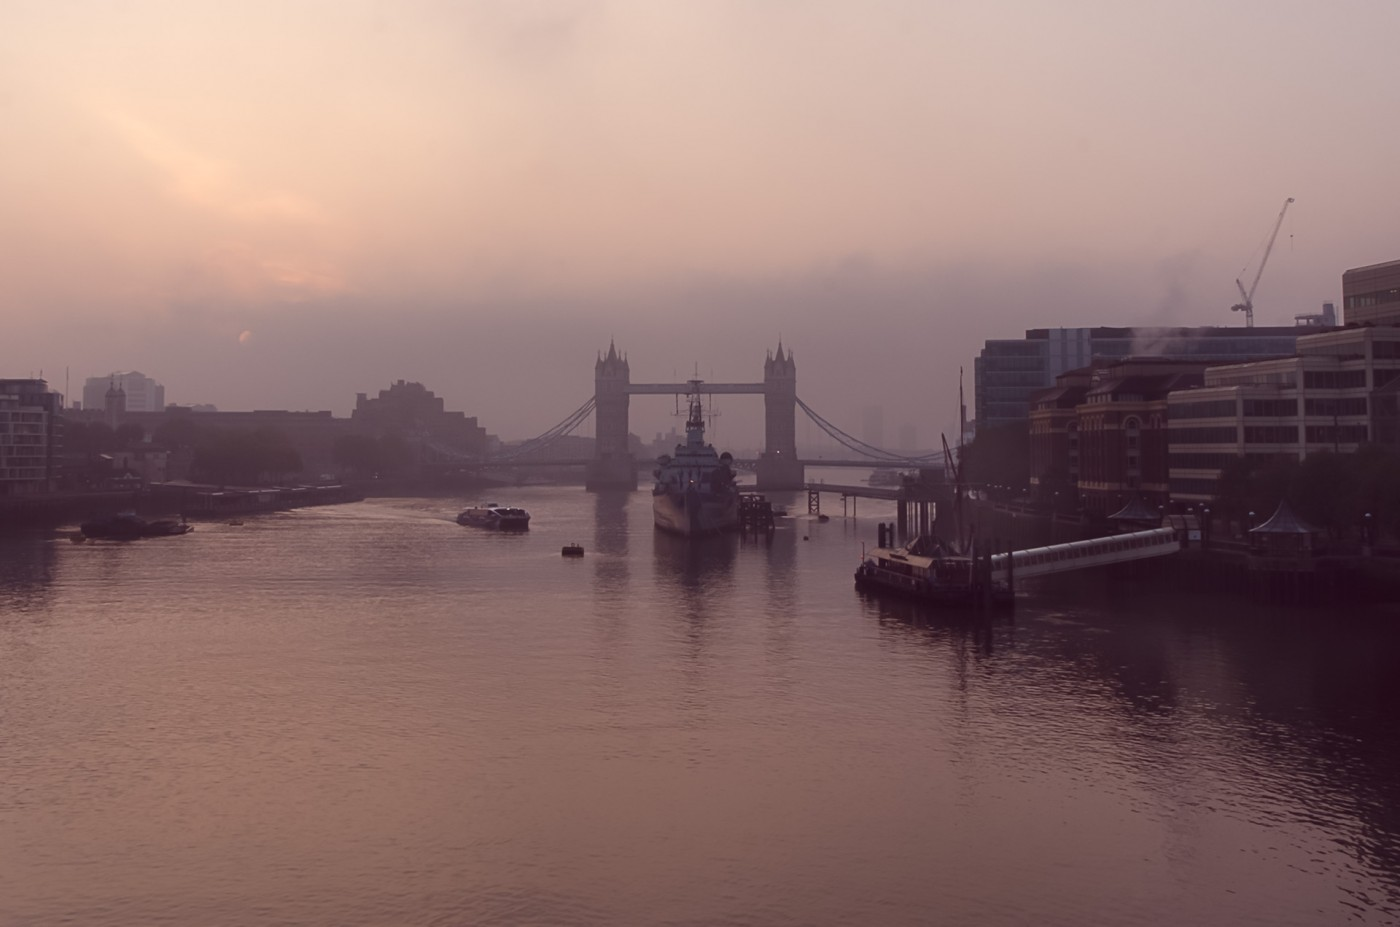 Misty morning at the Thames